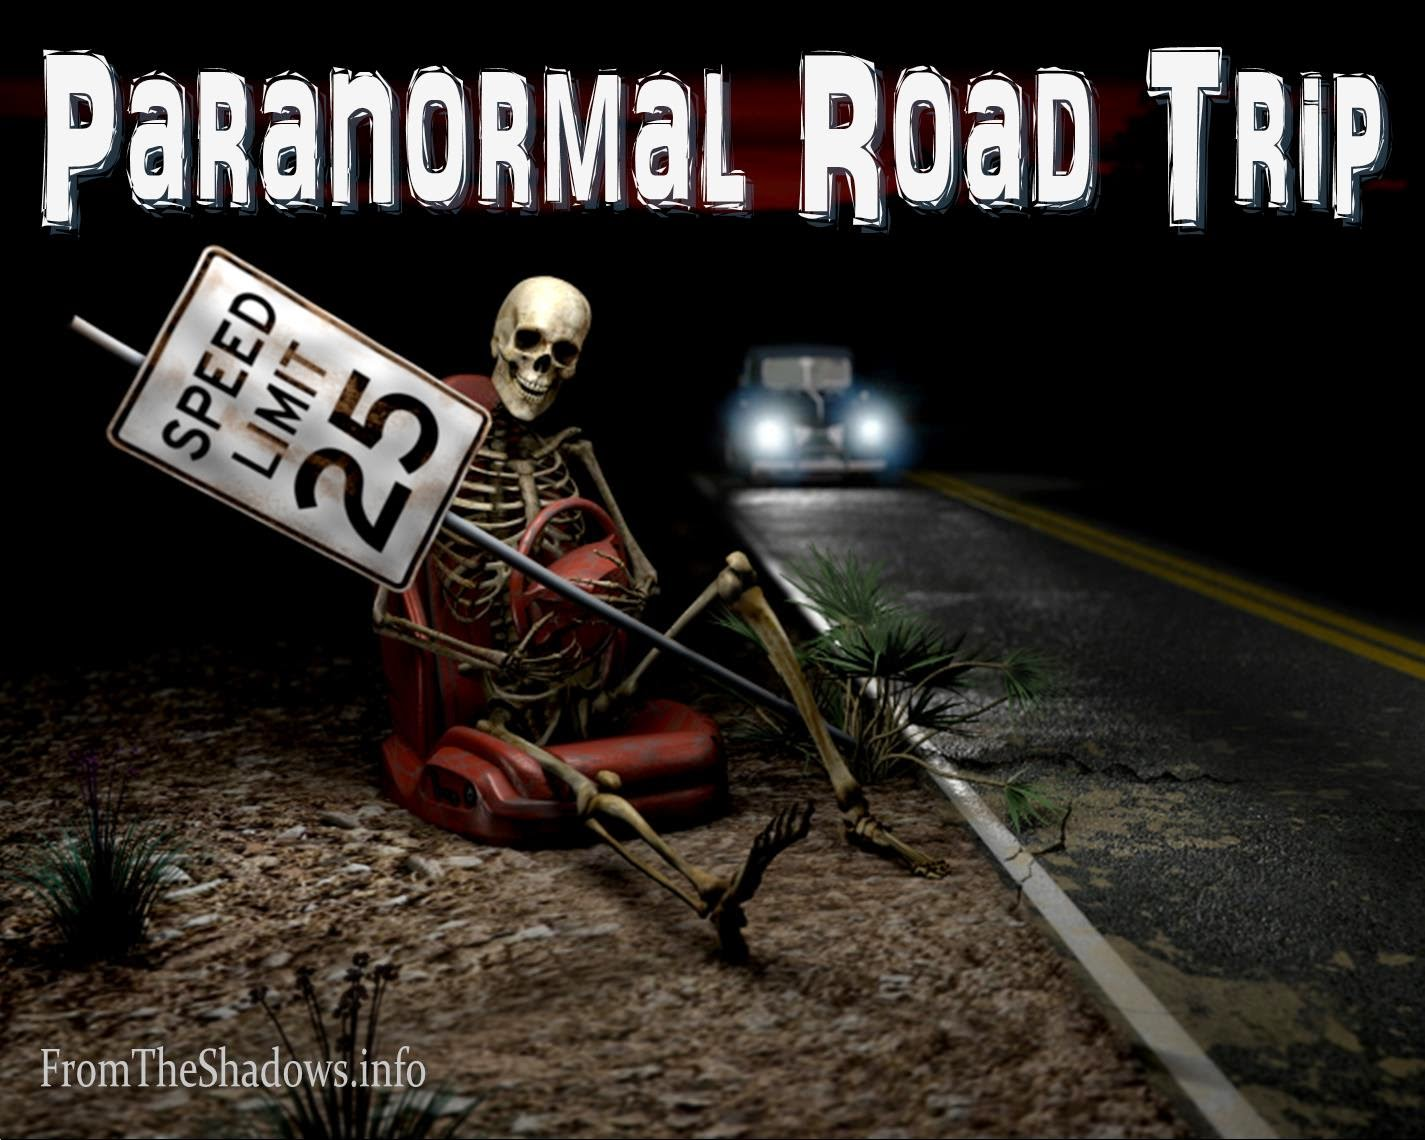 Paranormal Road Trip: Destination L.A. with Melissa F. Olson spooky places in Los Angeles